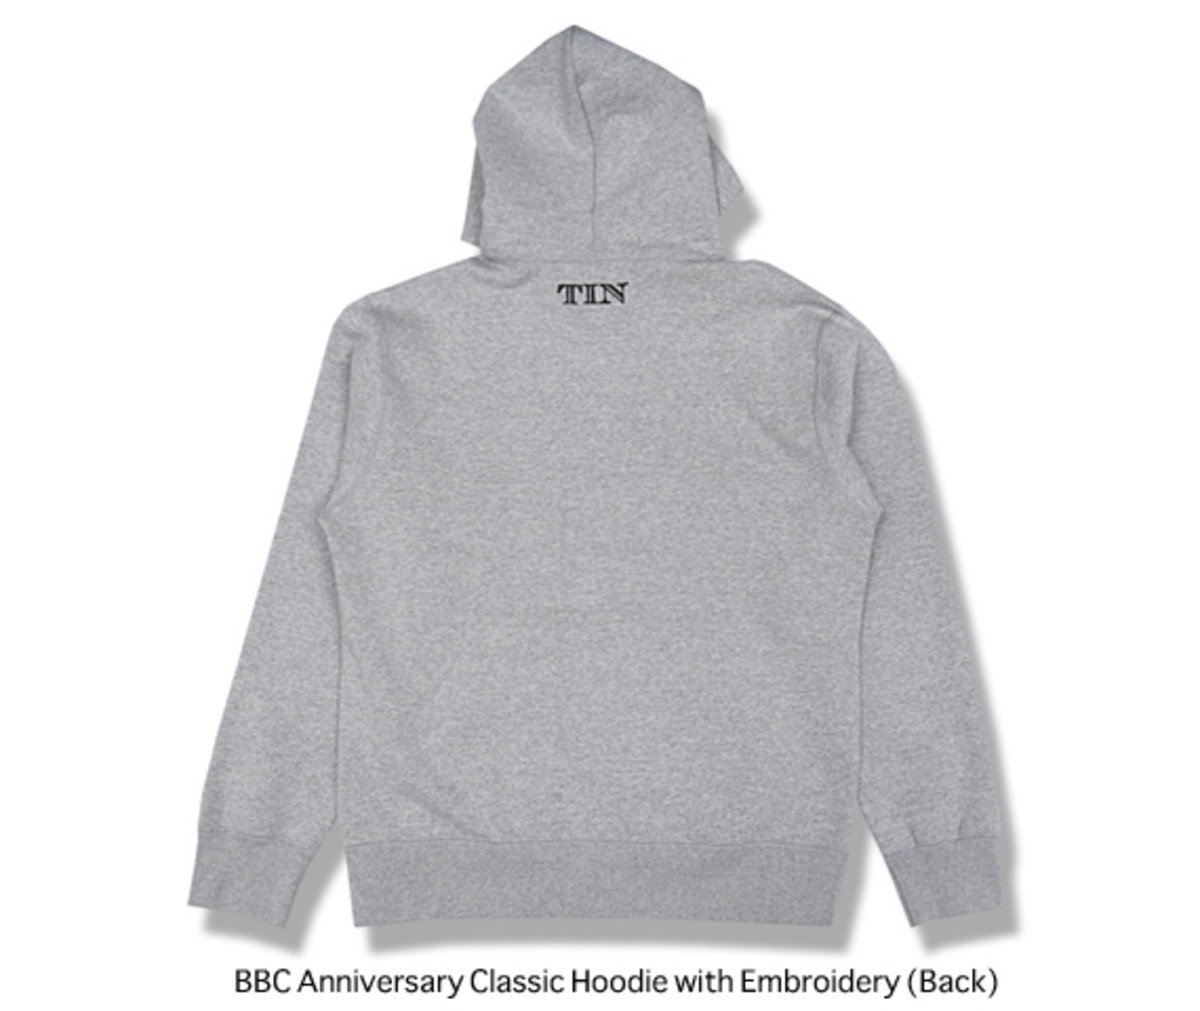 billionaire-boys-club-10th-anniversary-collection-hoodie-grey-back